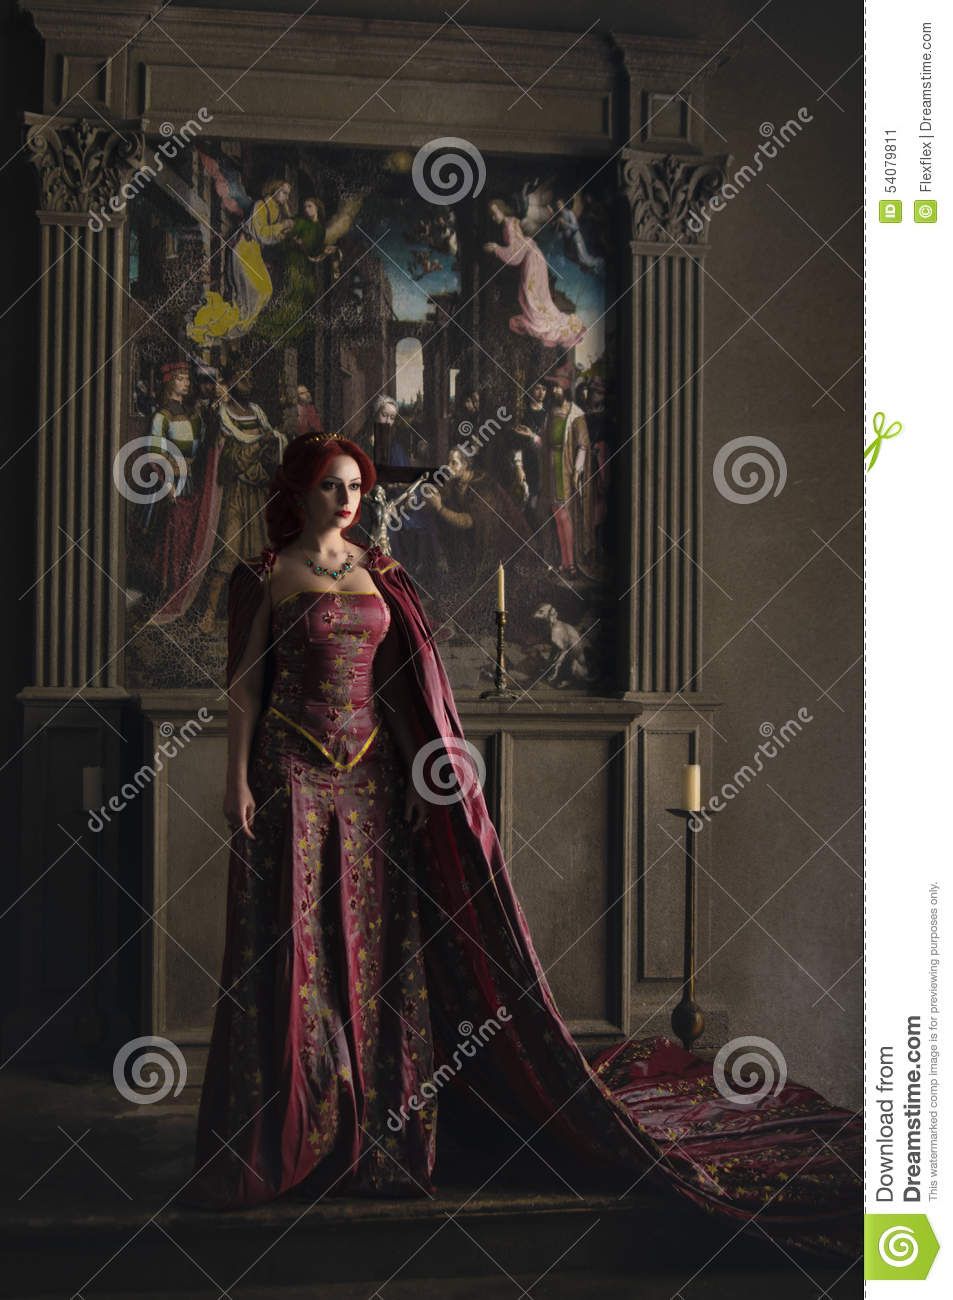 Woman with red hair wearing elegant royal garb